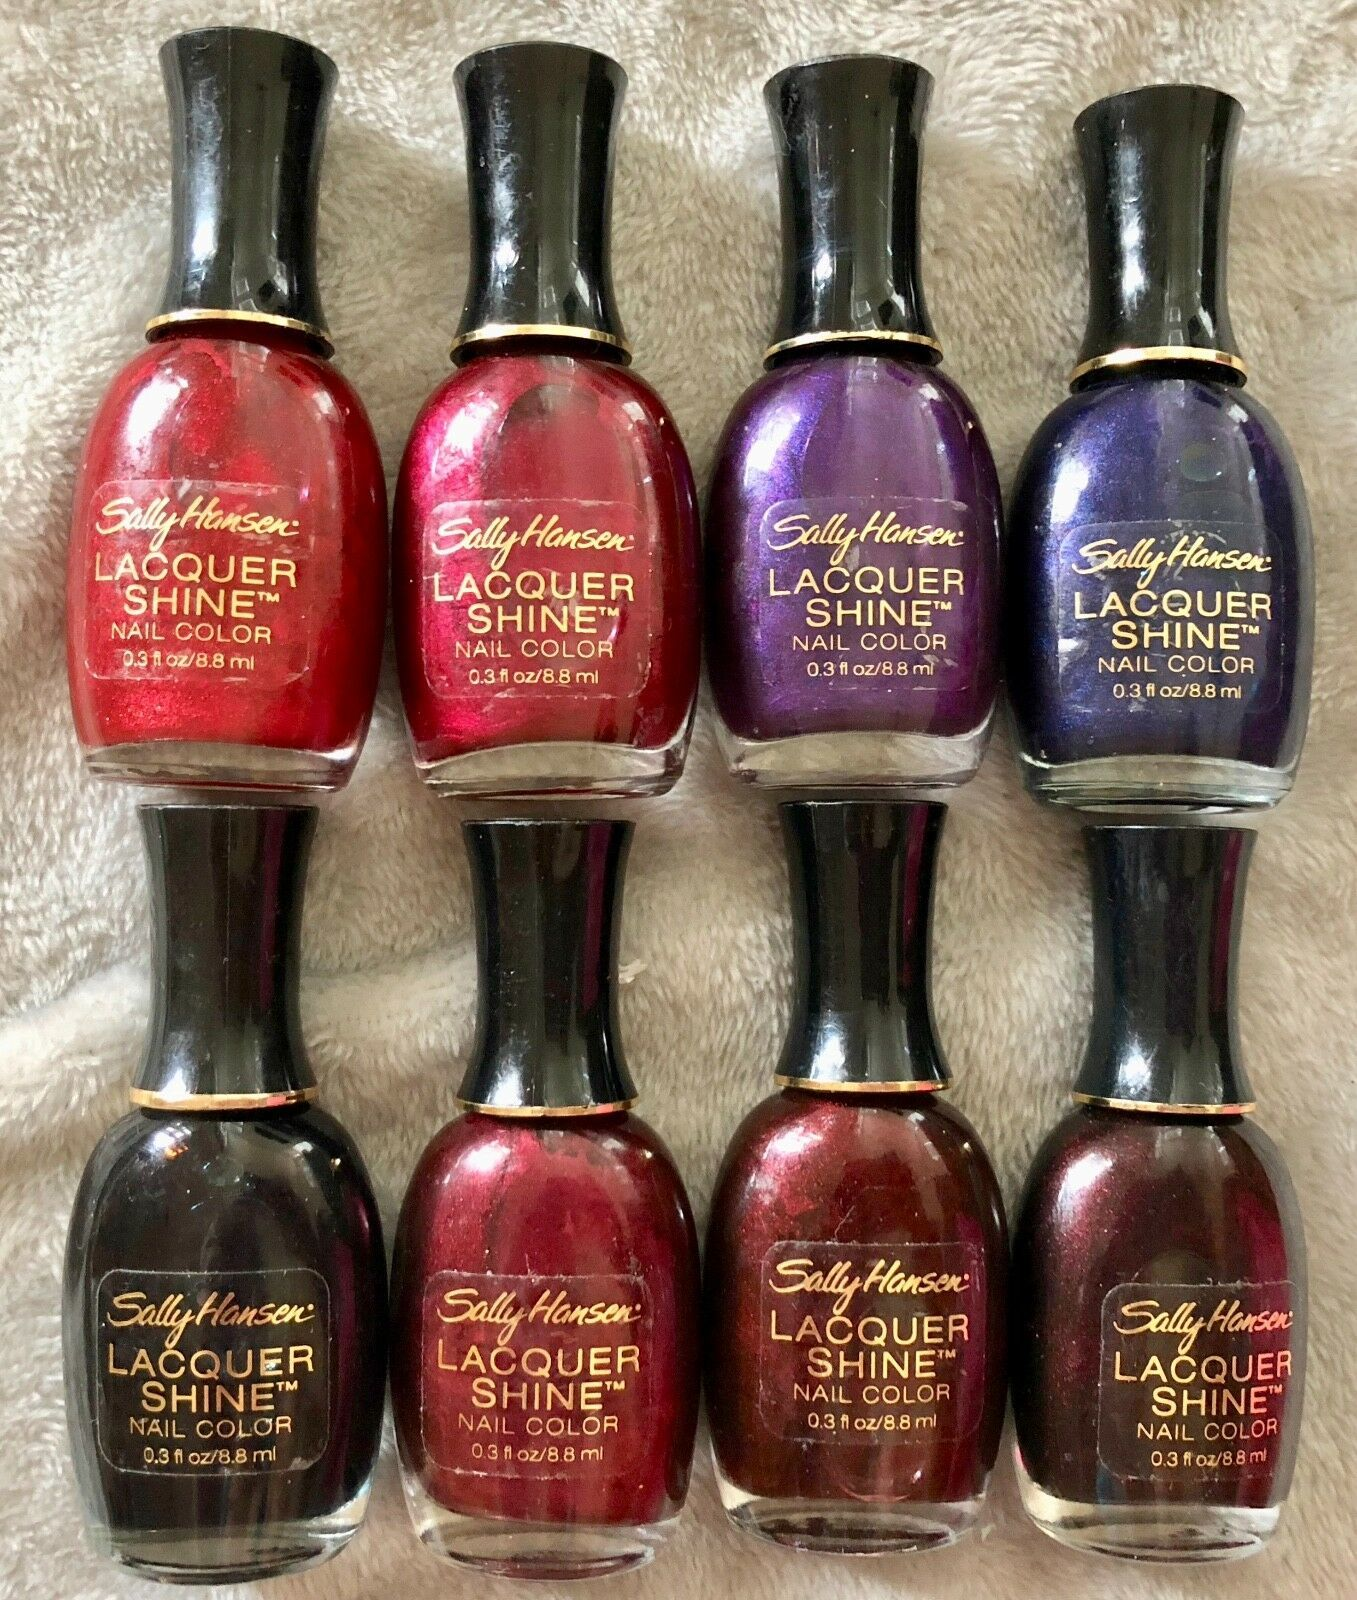 Lot of 8: NEW Sally Hansen Lacquer Shine Nail Color Polish - No Repeats!